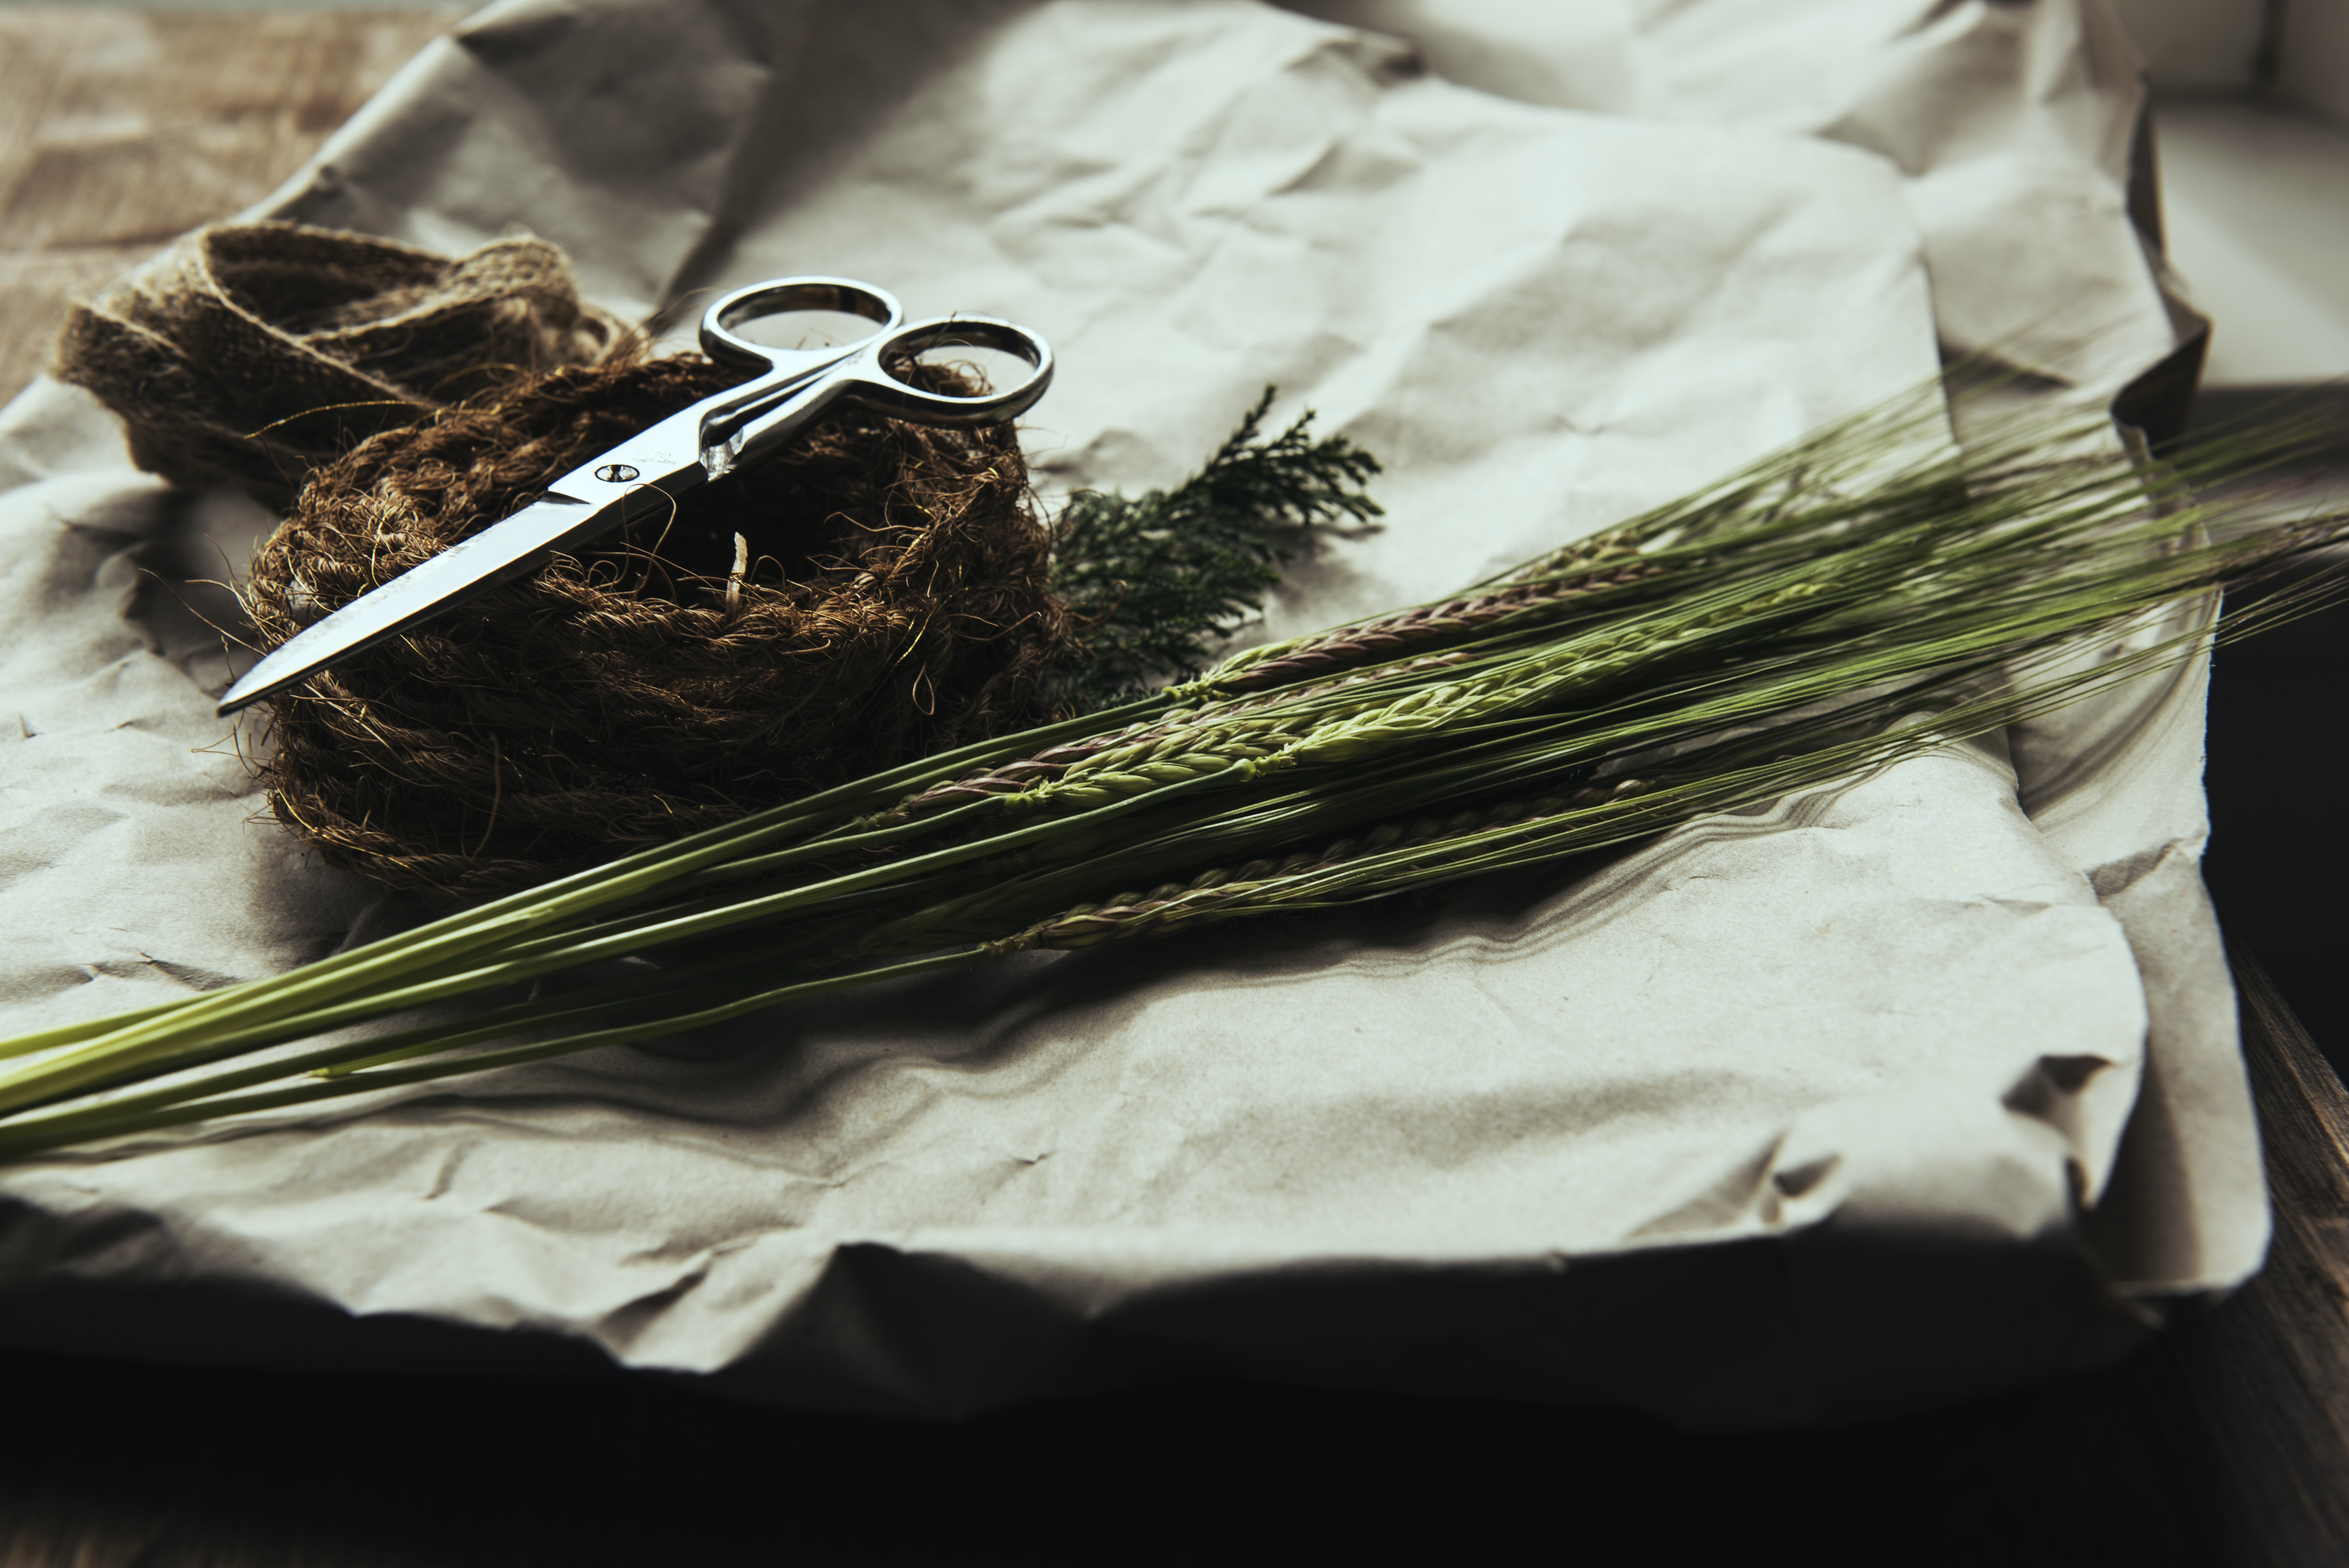 Scissors and grass on nest and craft paper in Leeds